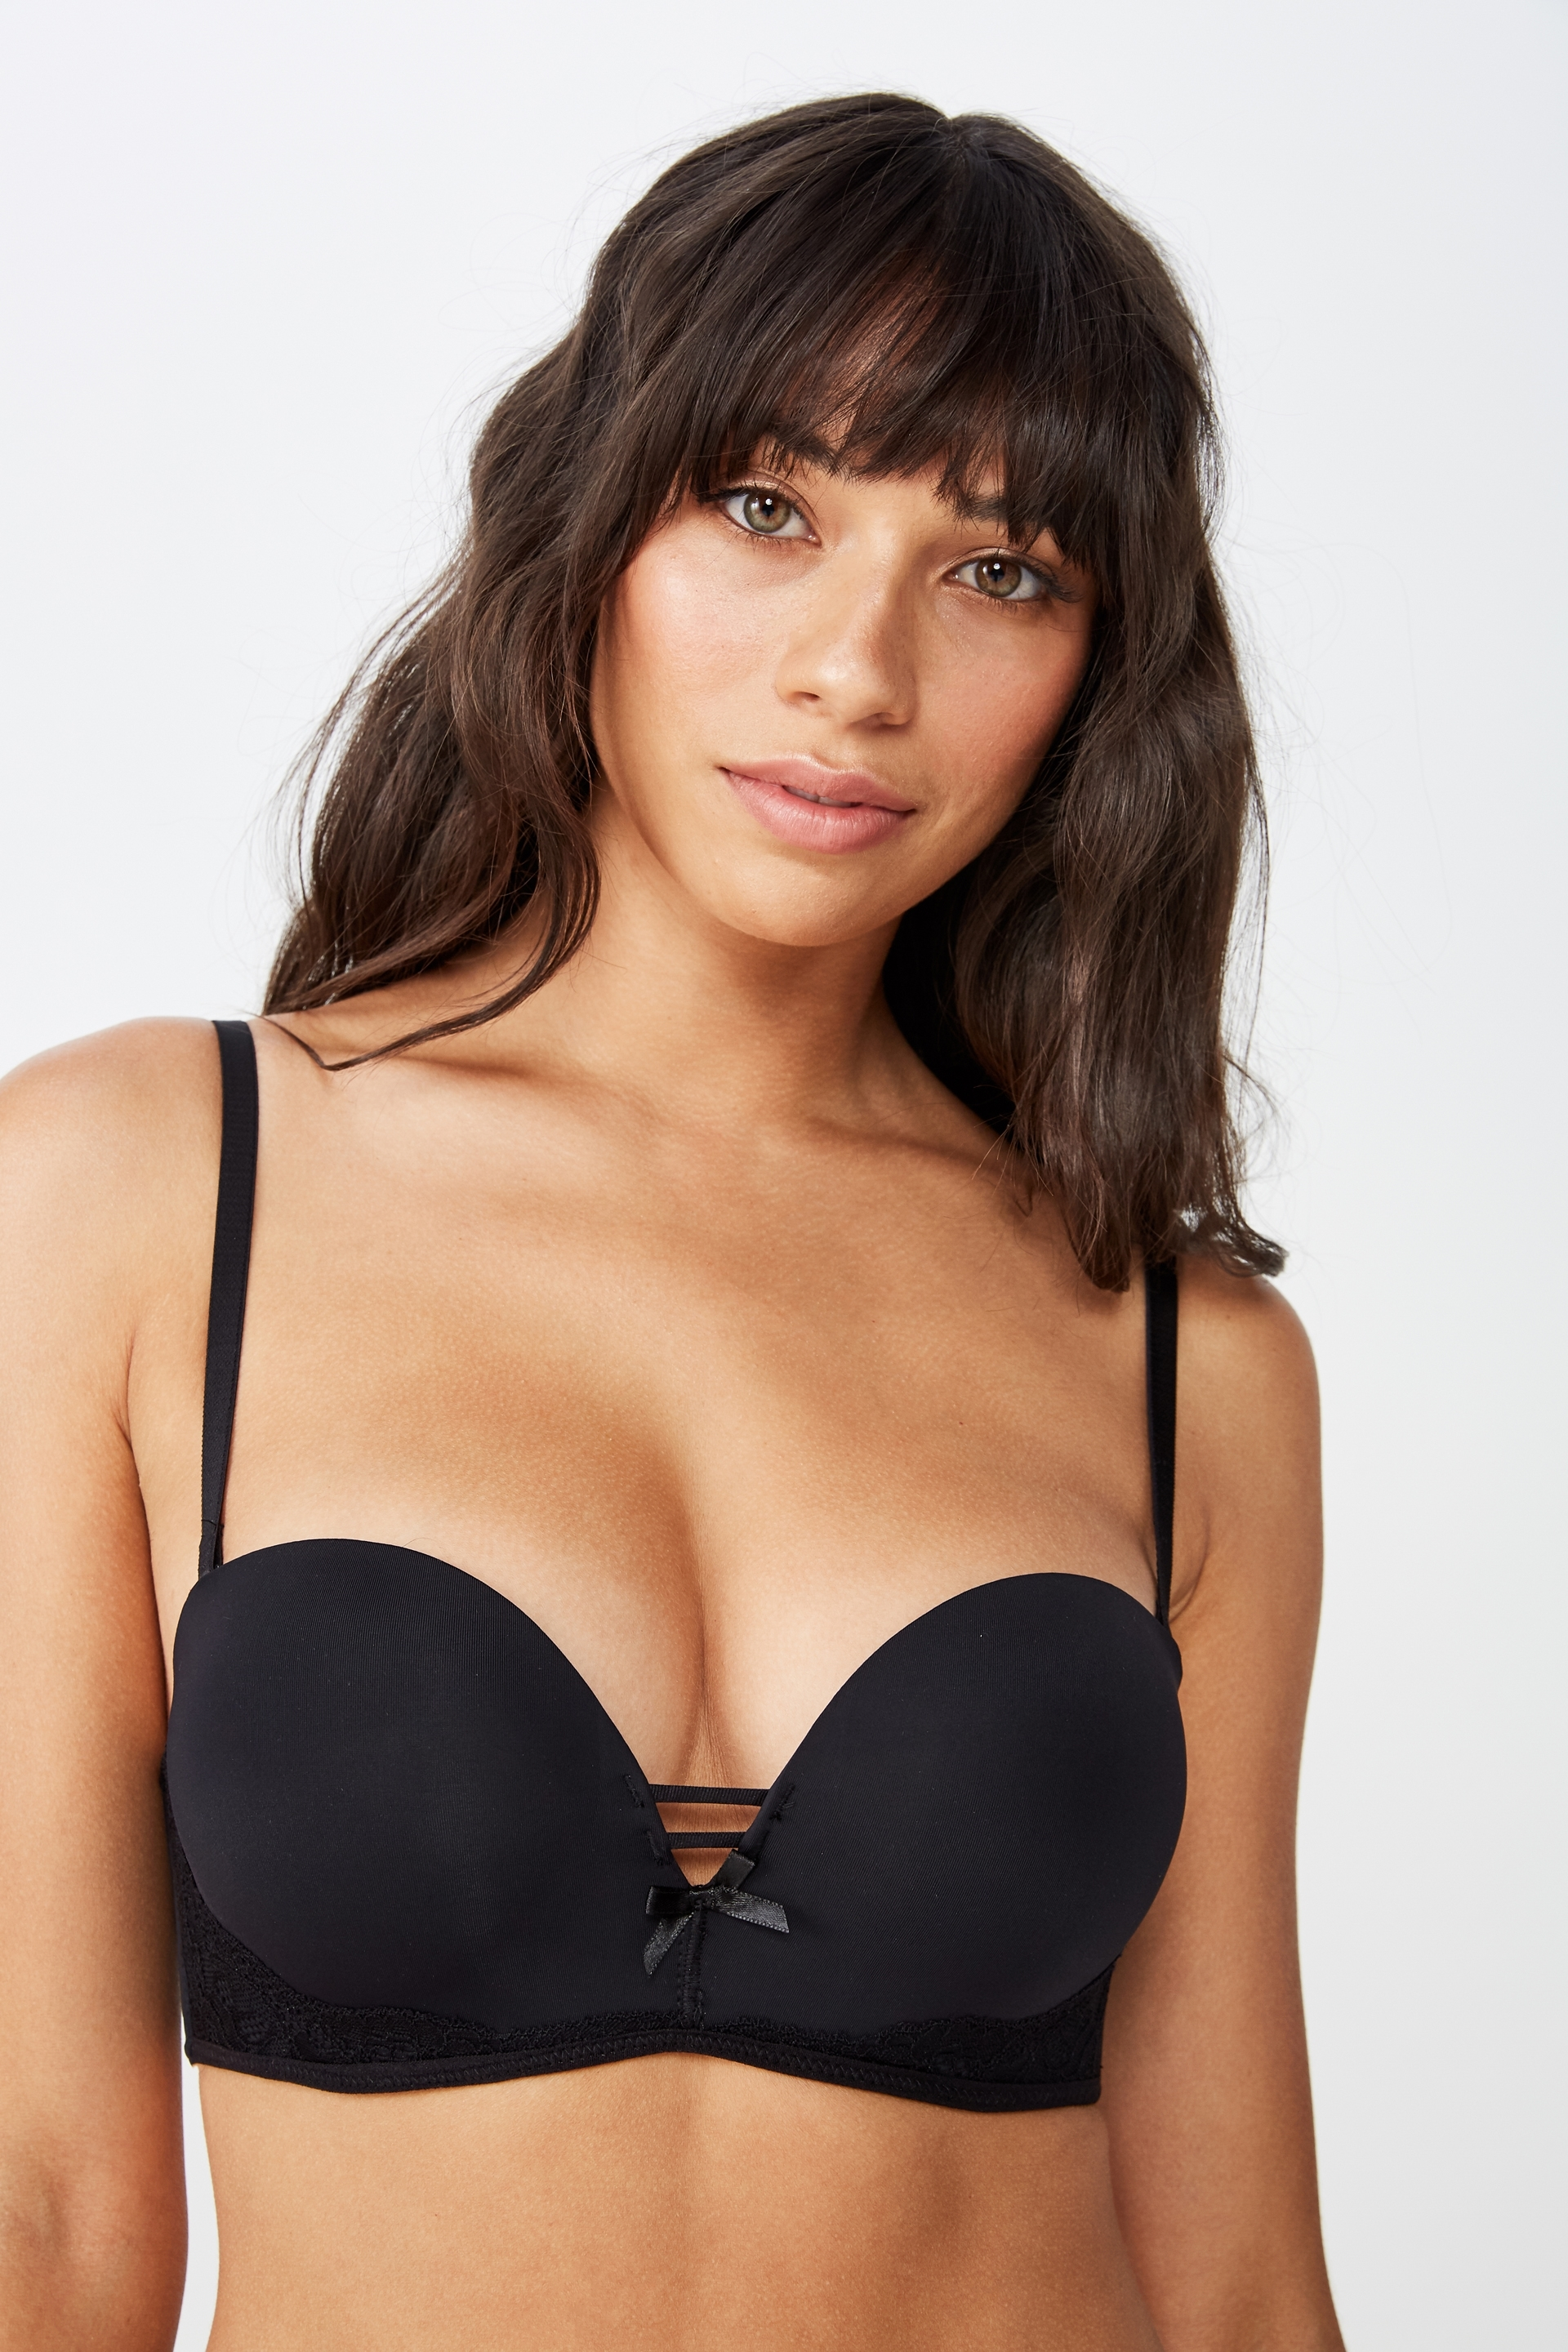 e2512e10204 Sophia Lace Strapless Push Up 2 Bra | Women's Lifestyle Fashion ...